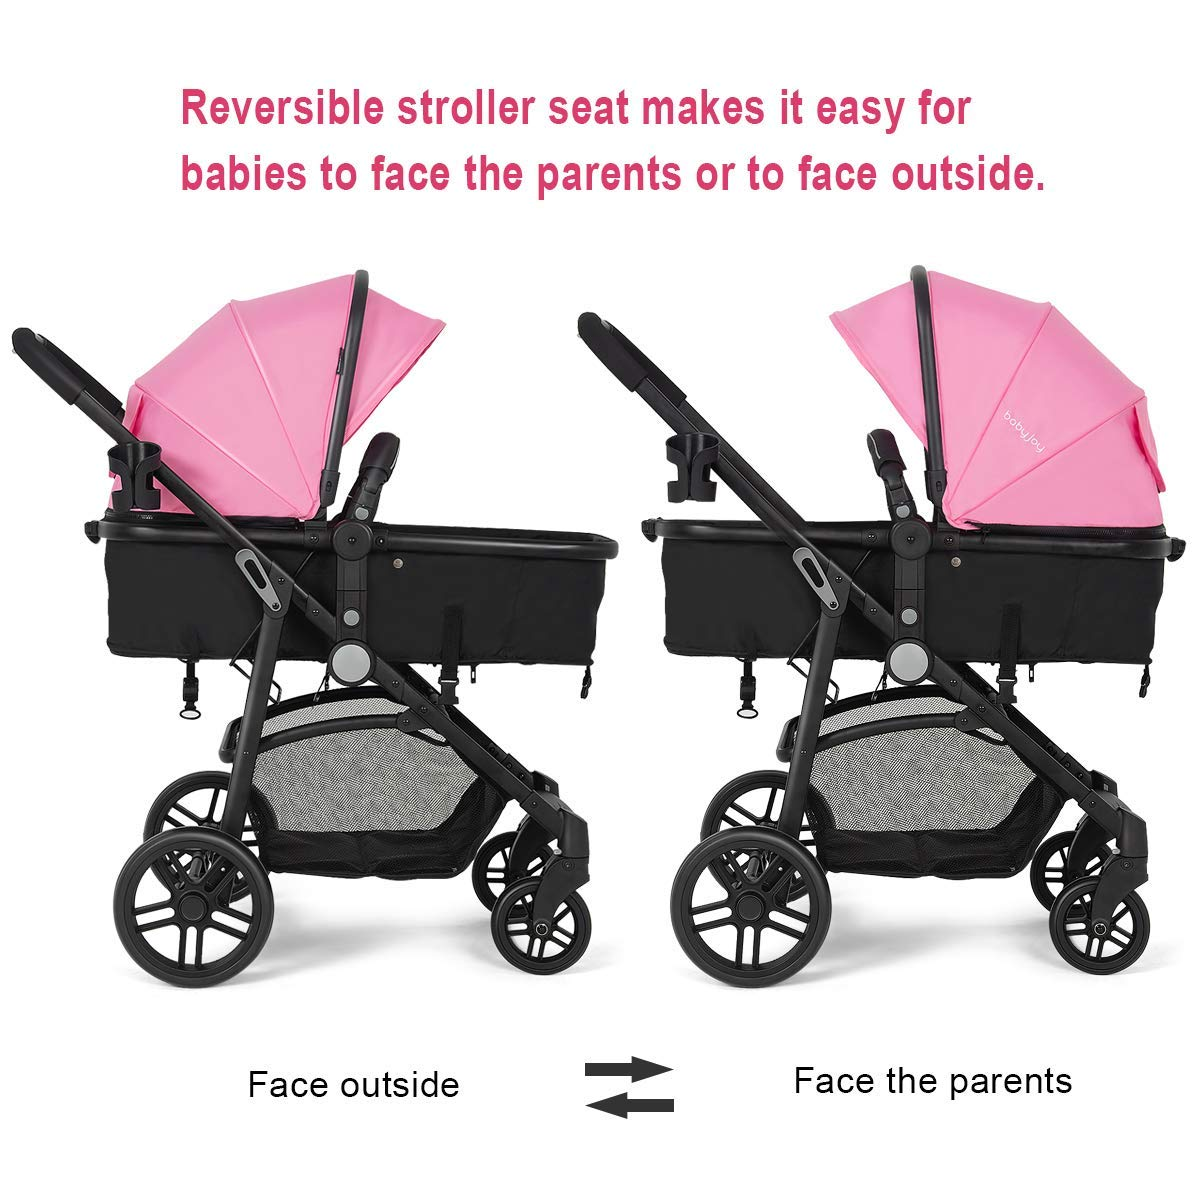 Costzon Baby Stroller, 2 in 1 Convertible Carriage Bassinet to Stroller, Pushchair with Foot Cover, Cup Holder, Large Storage Space, Wheels Suspension, 5-Point Harness (Pink Color) by Costzon (Image #2)